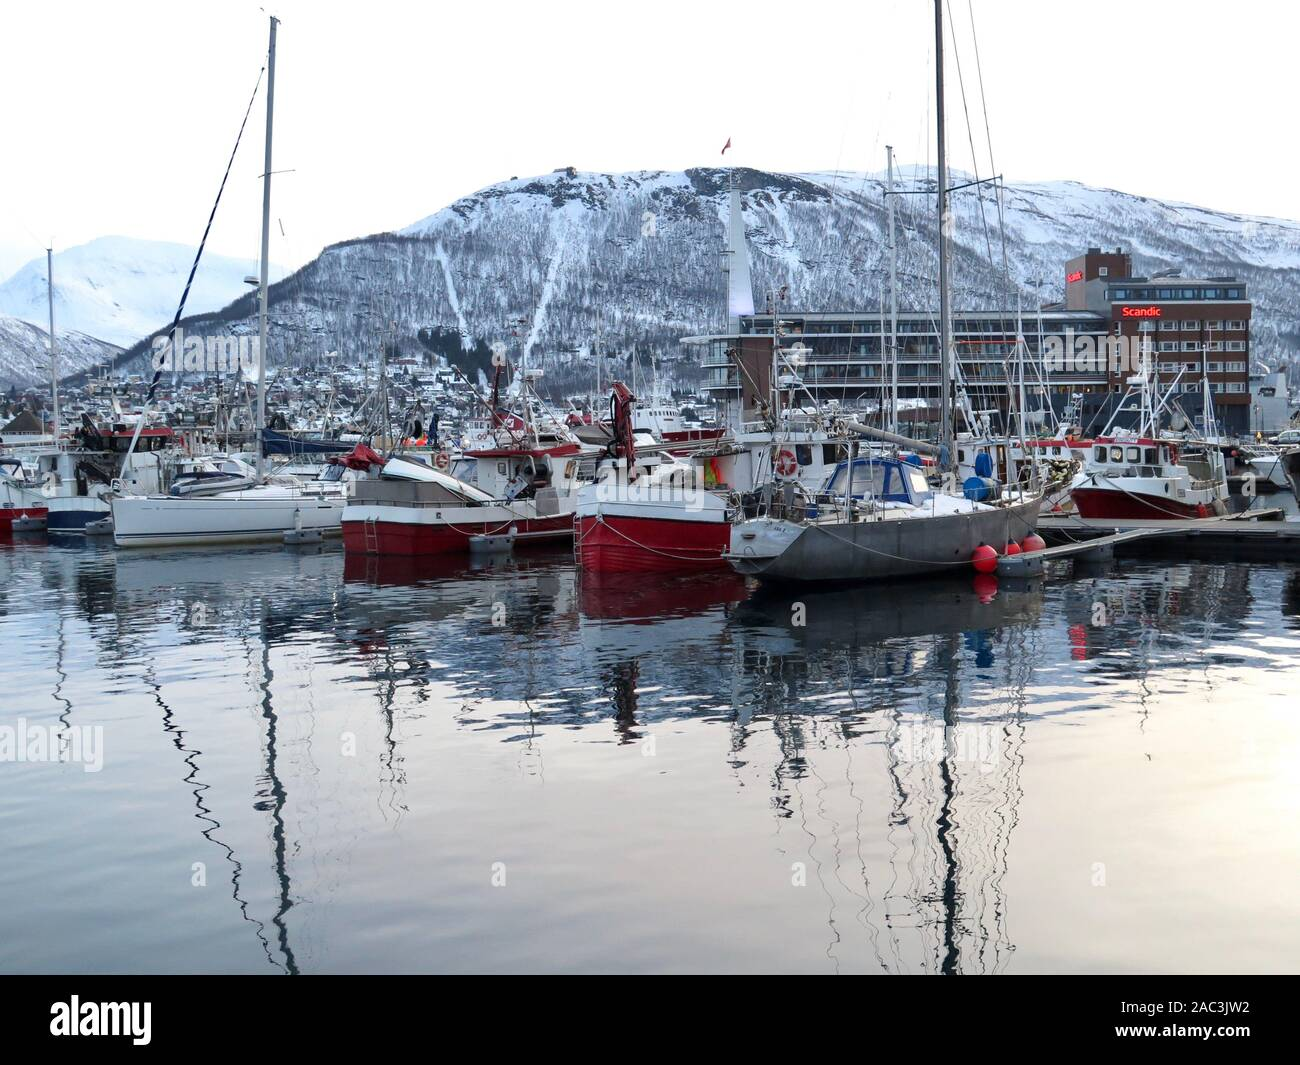 Fishing wharfs, Tromso, Norway Stock Photo